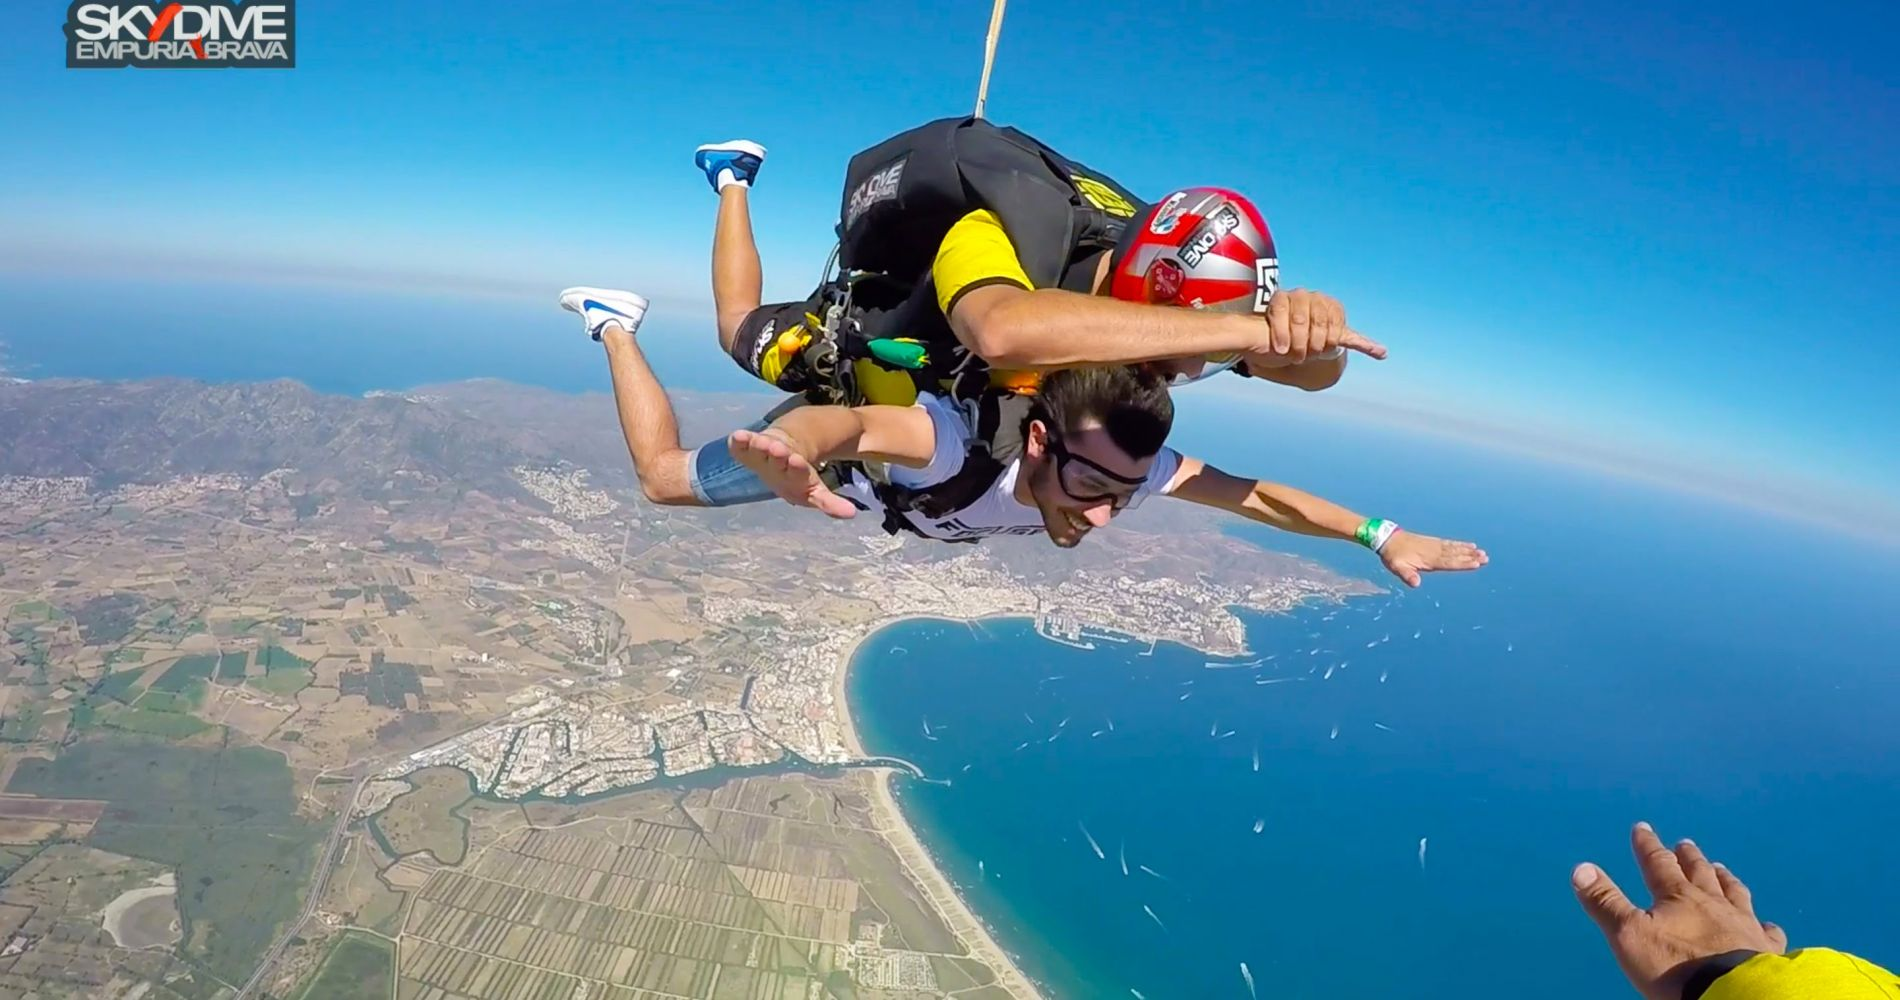 Breathtaking tandem skydive in Empuriabrava